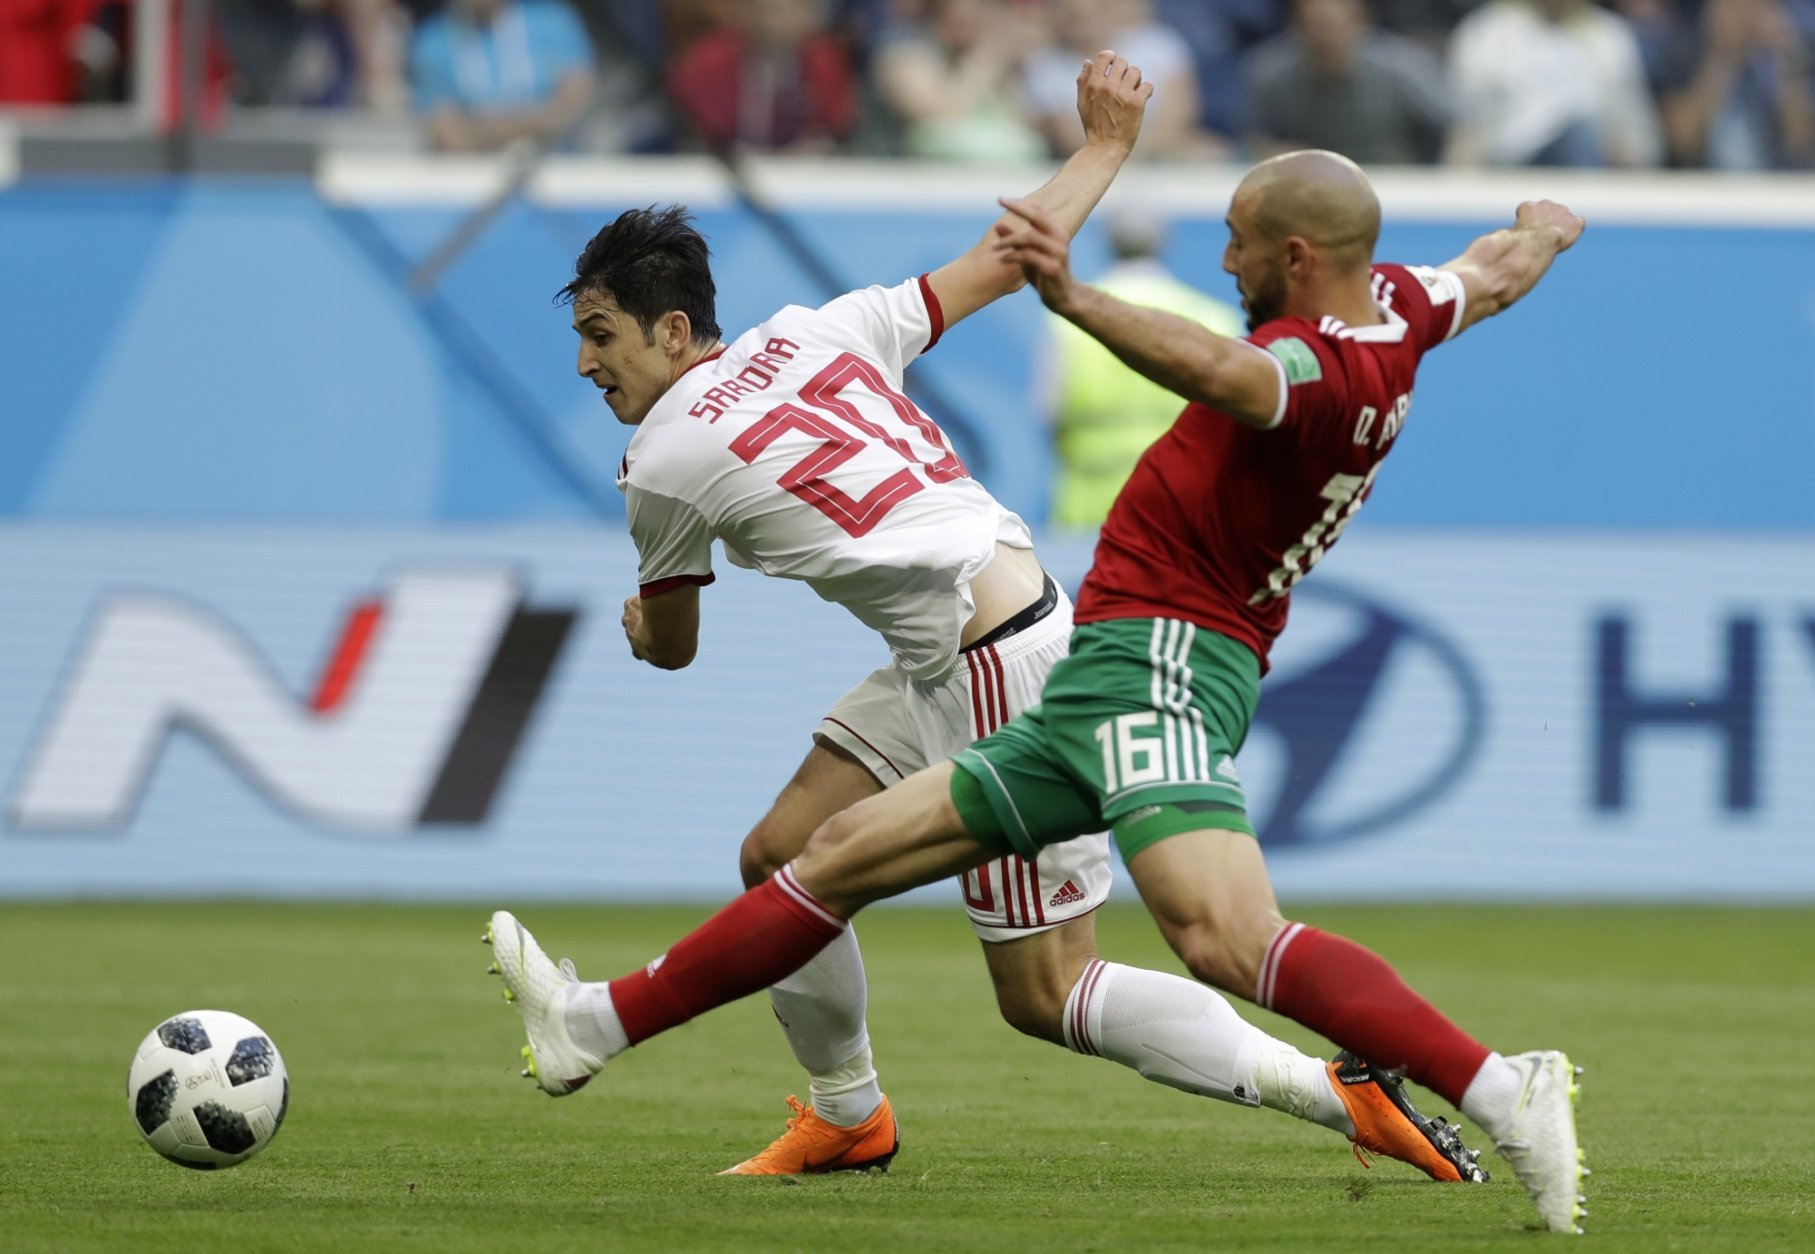 Morocco's Noureddine Amrabat, left, and Iran's Sardar Azmoun compete for the ball during the group B match between Morocco and Iran at the 2018 soccer World Cup in the St. Petersburg Stadium in St. Petersburg, Russia, Friday, June 15, 2018. (AP Photo/Andrew Medichini)